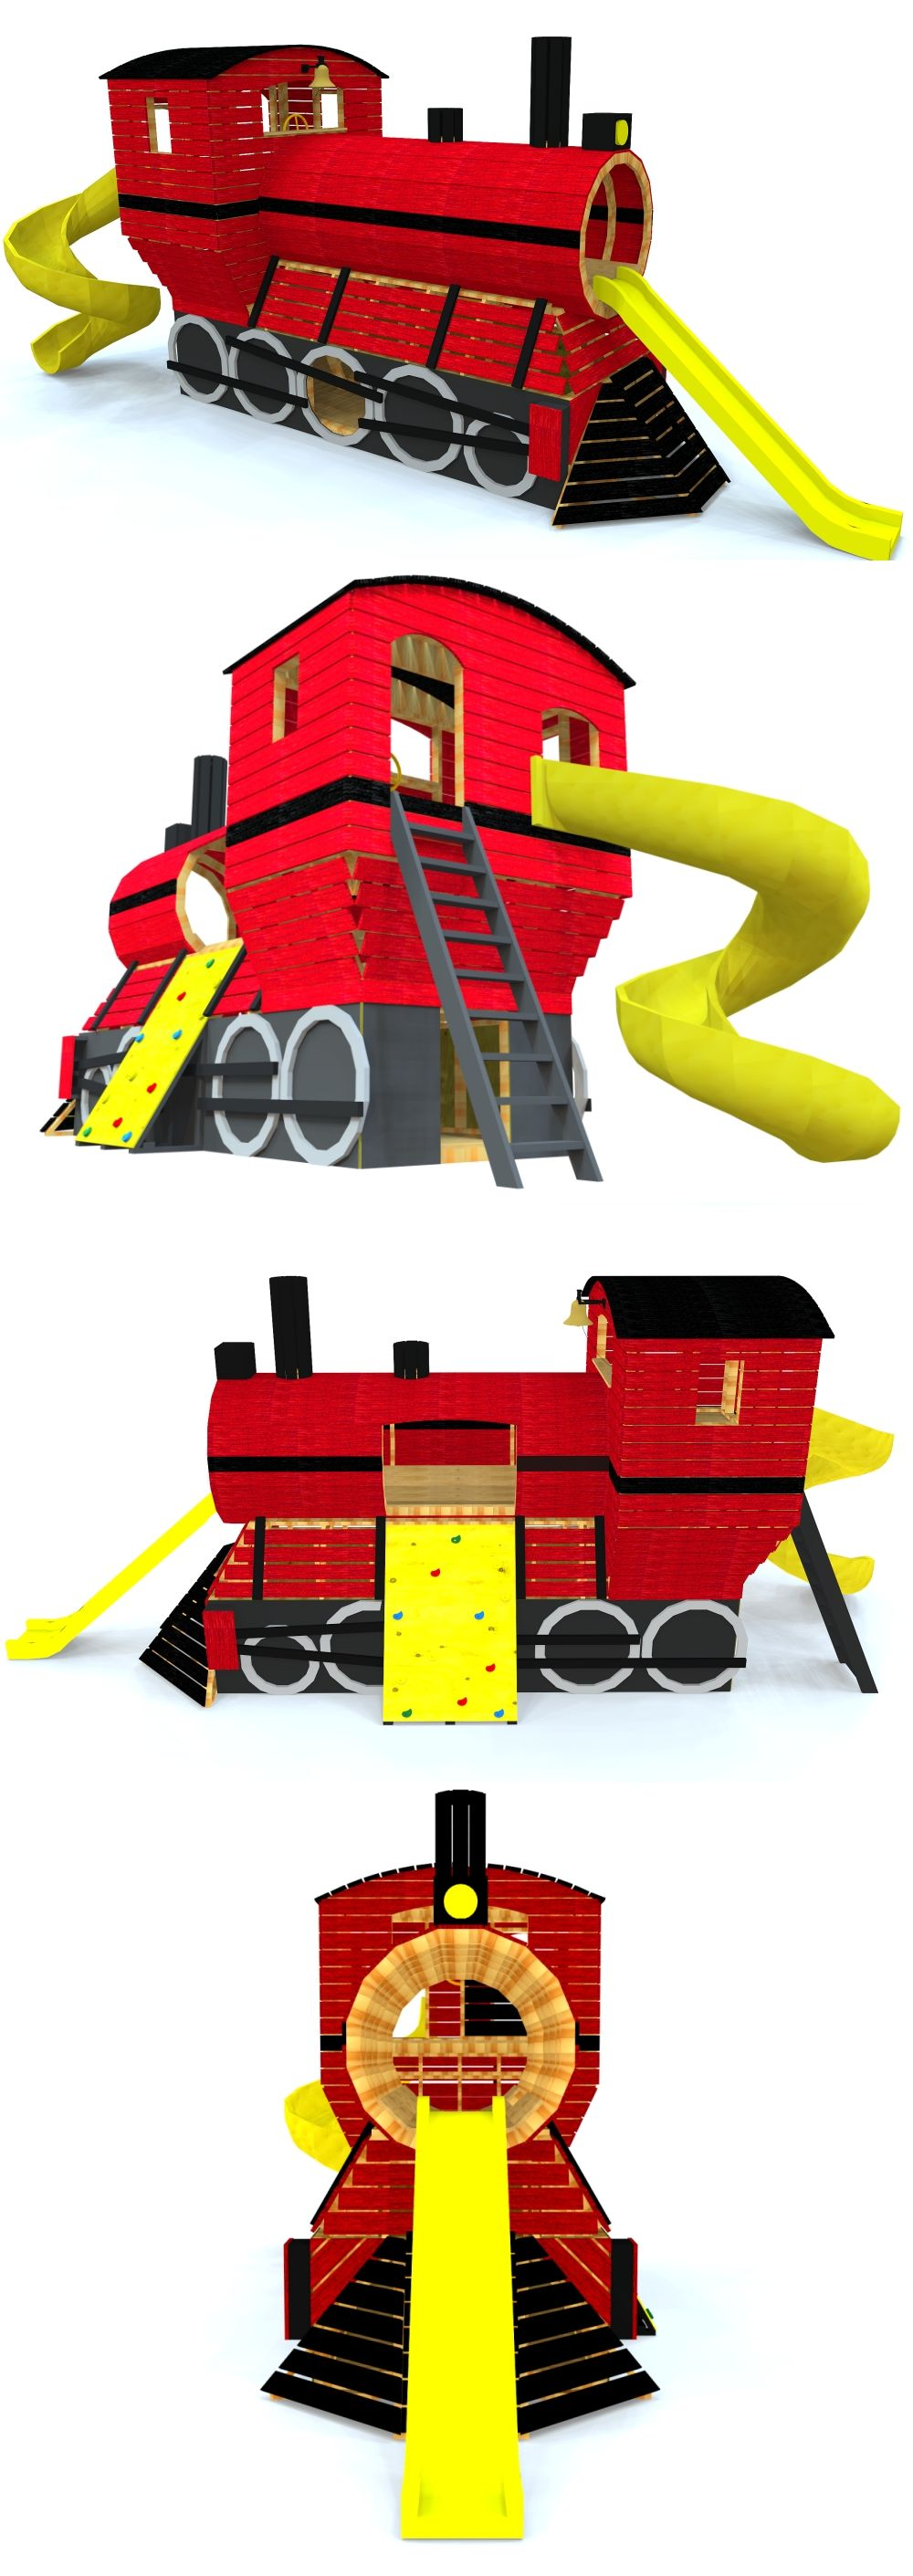 old town train play set plan playhouses engine and playground